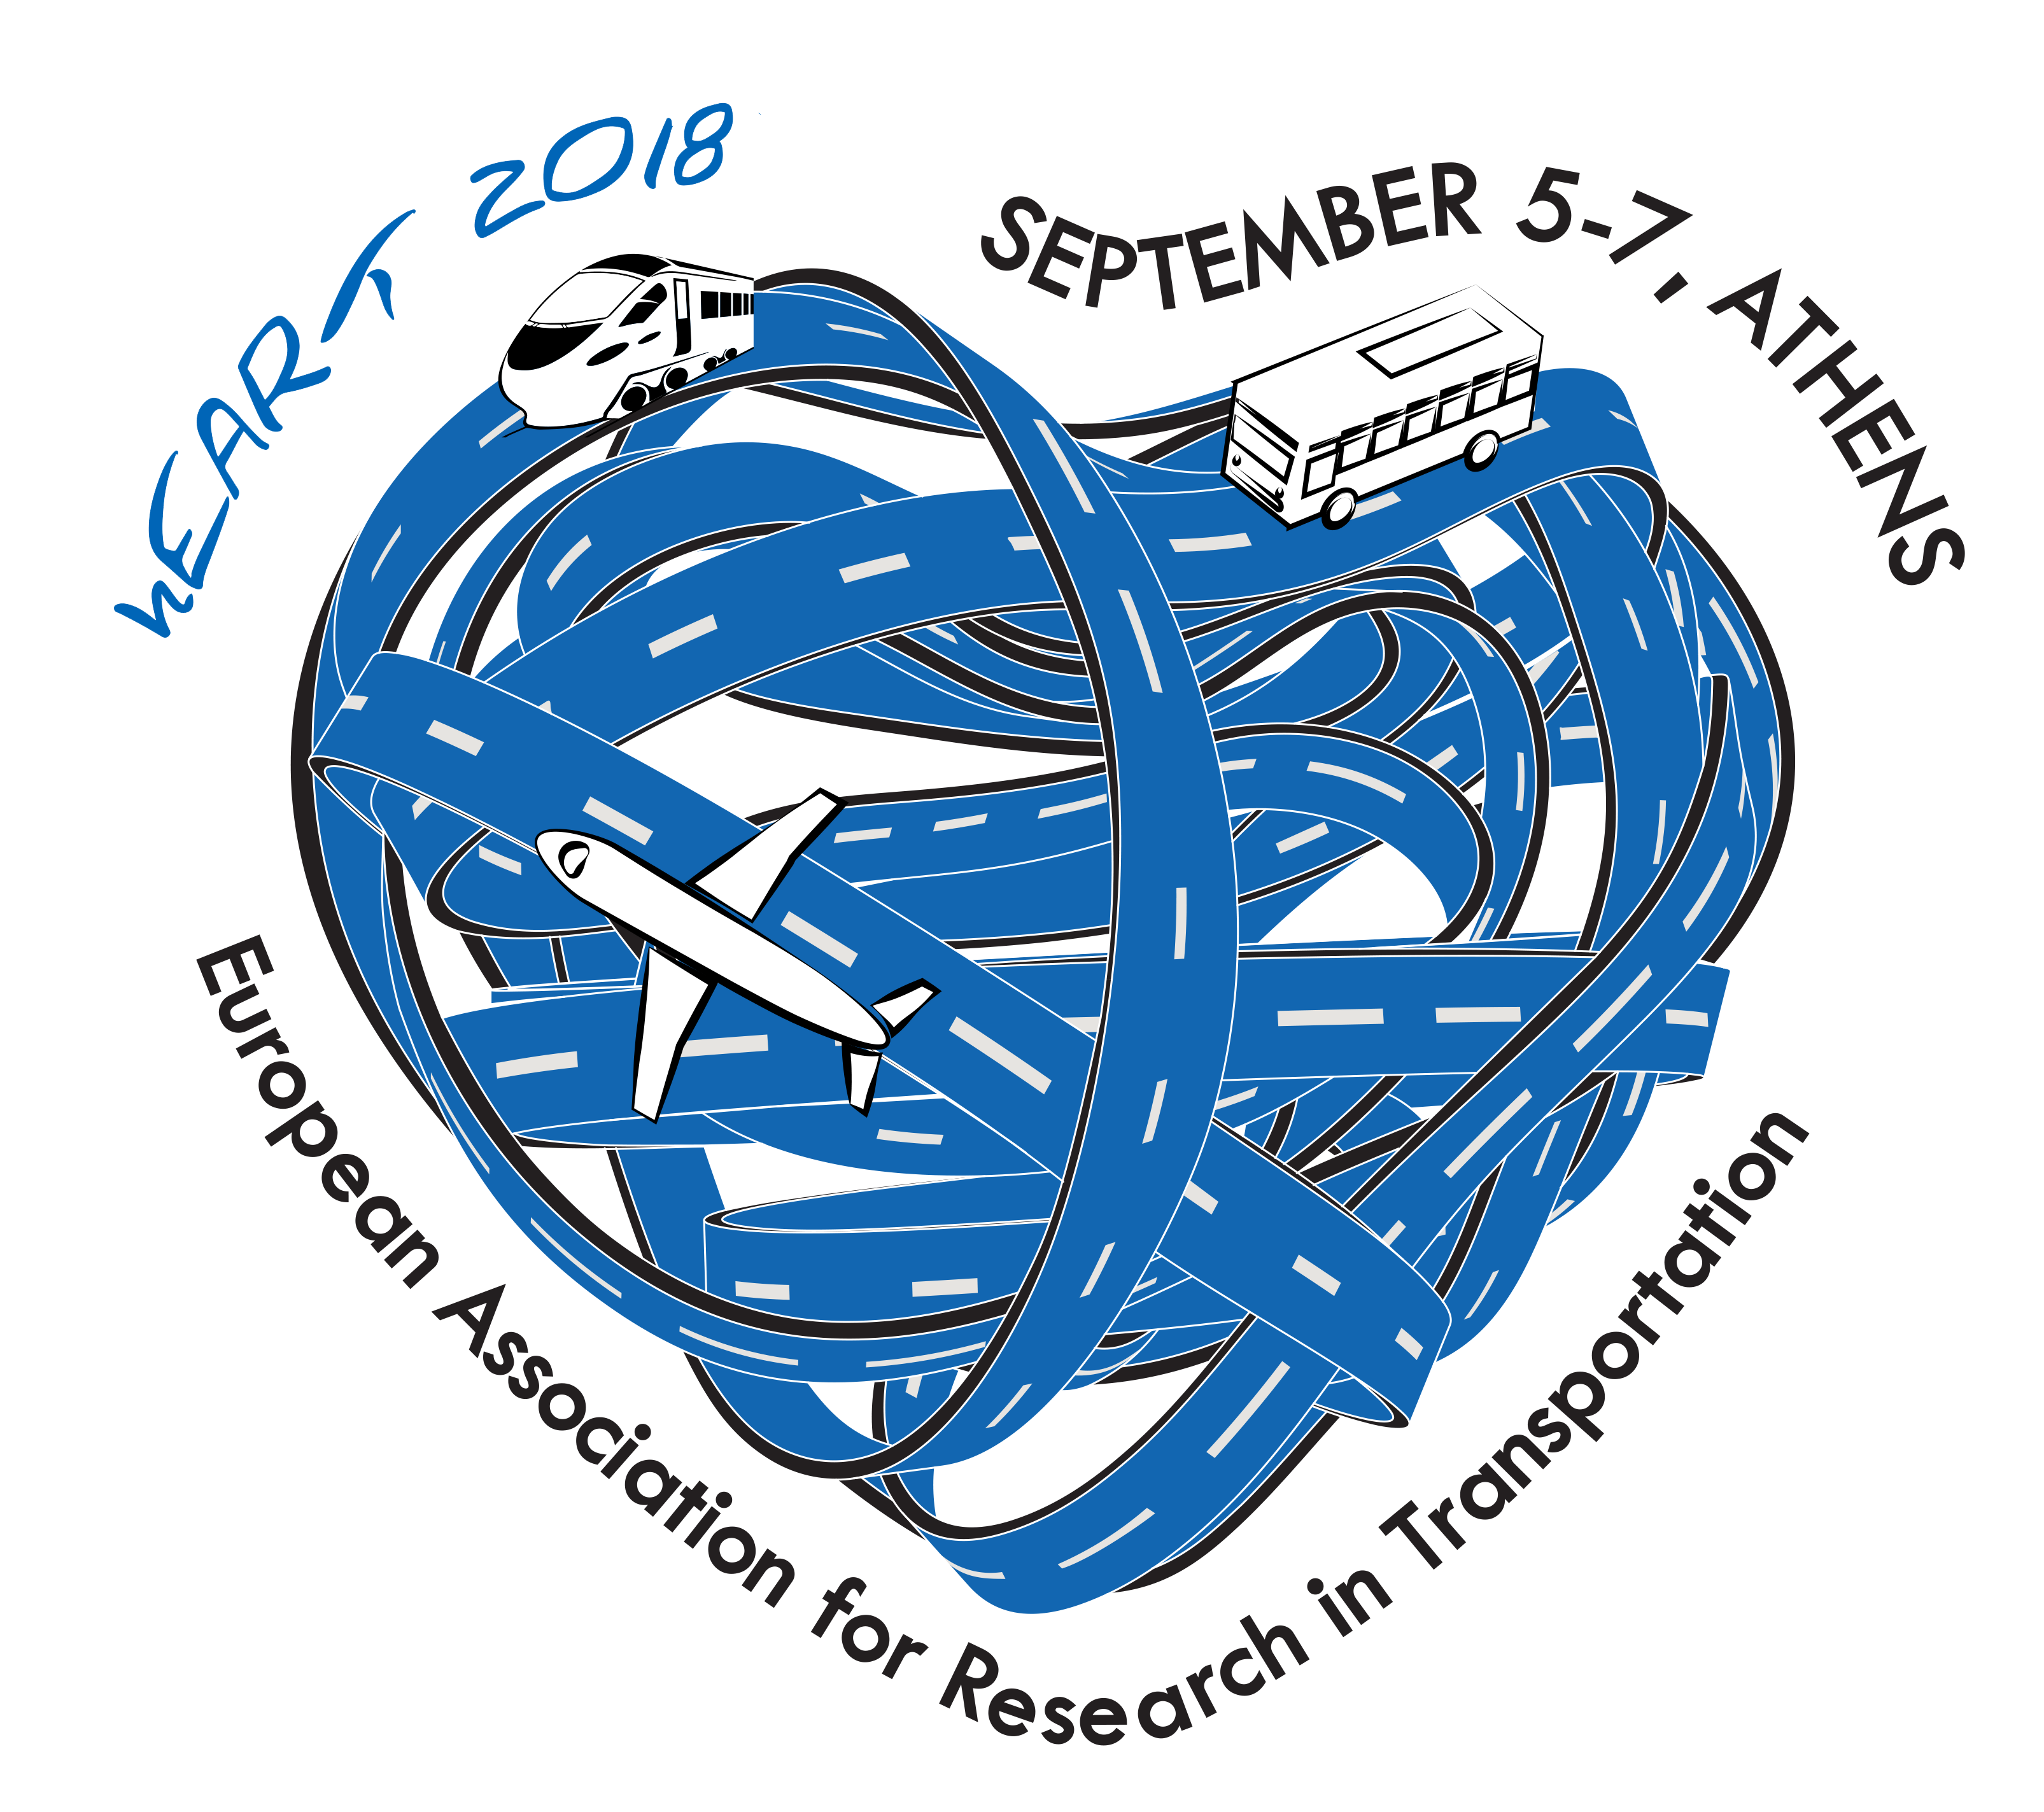 hEART 2018 – 7th Symposium of the European Association for Research in Transportation